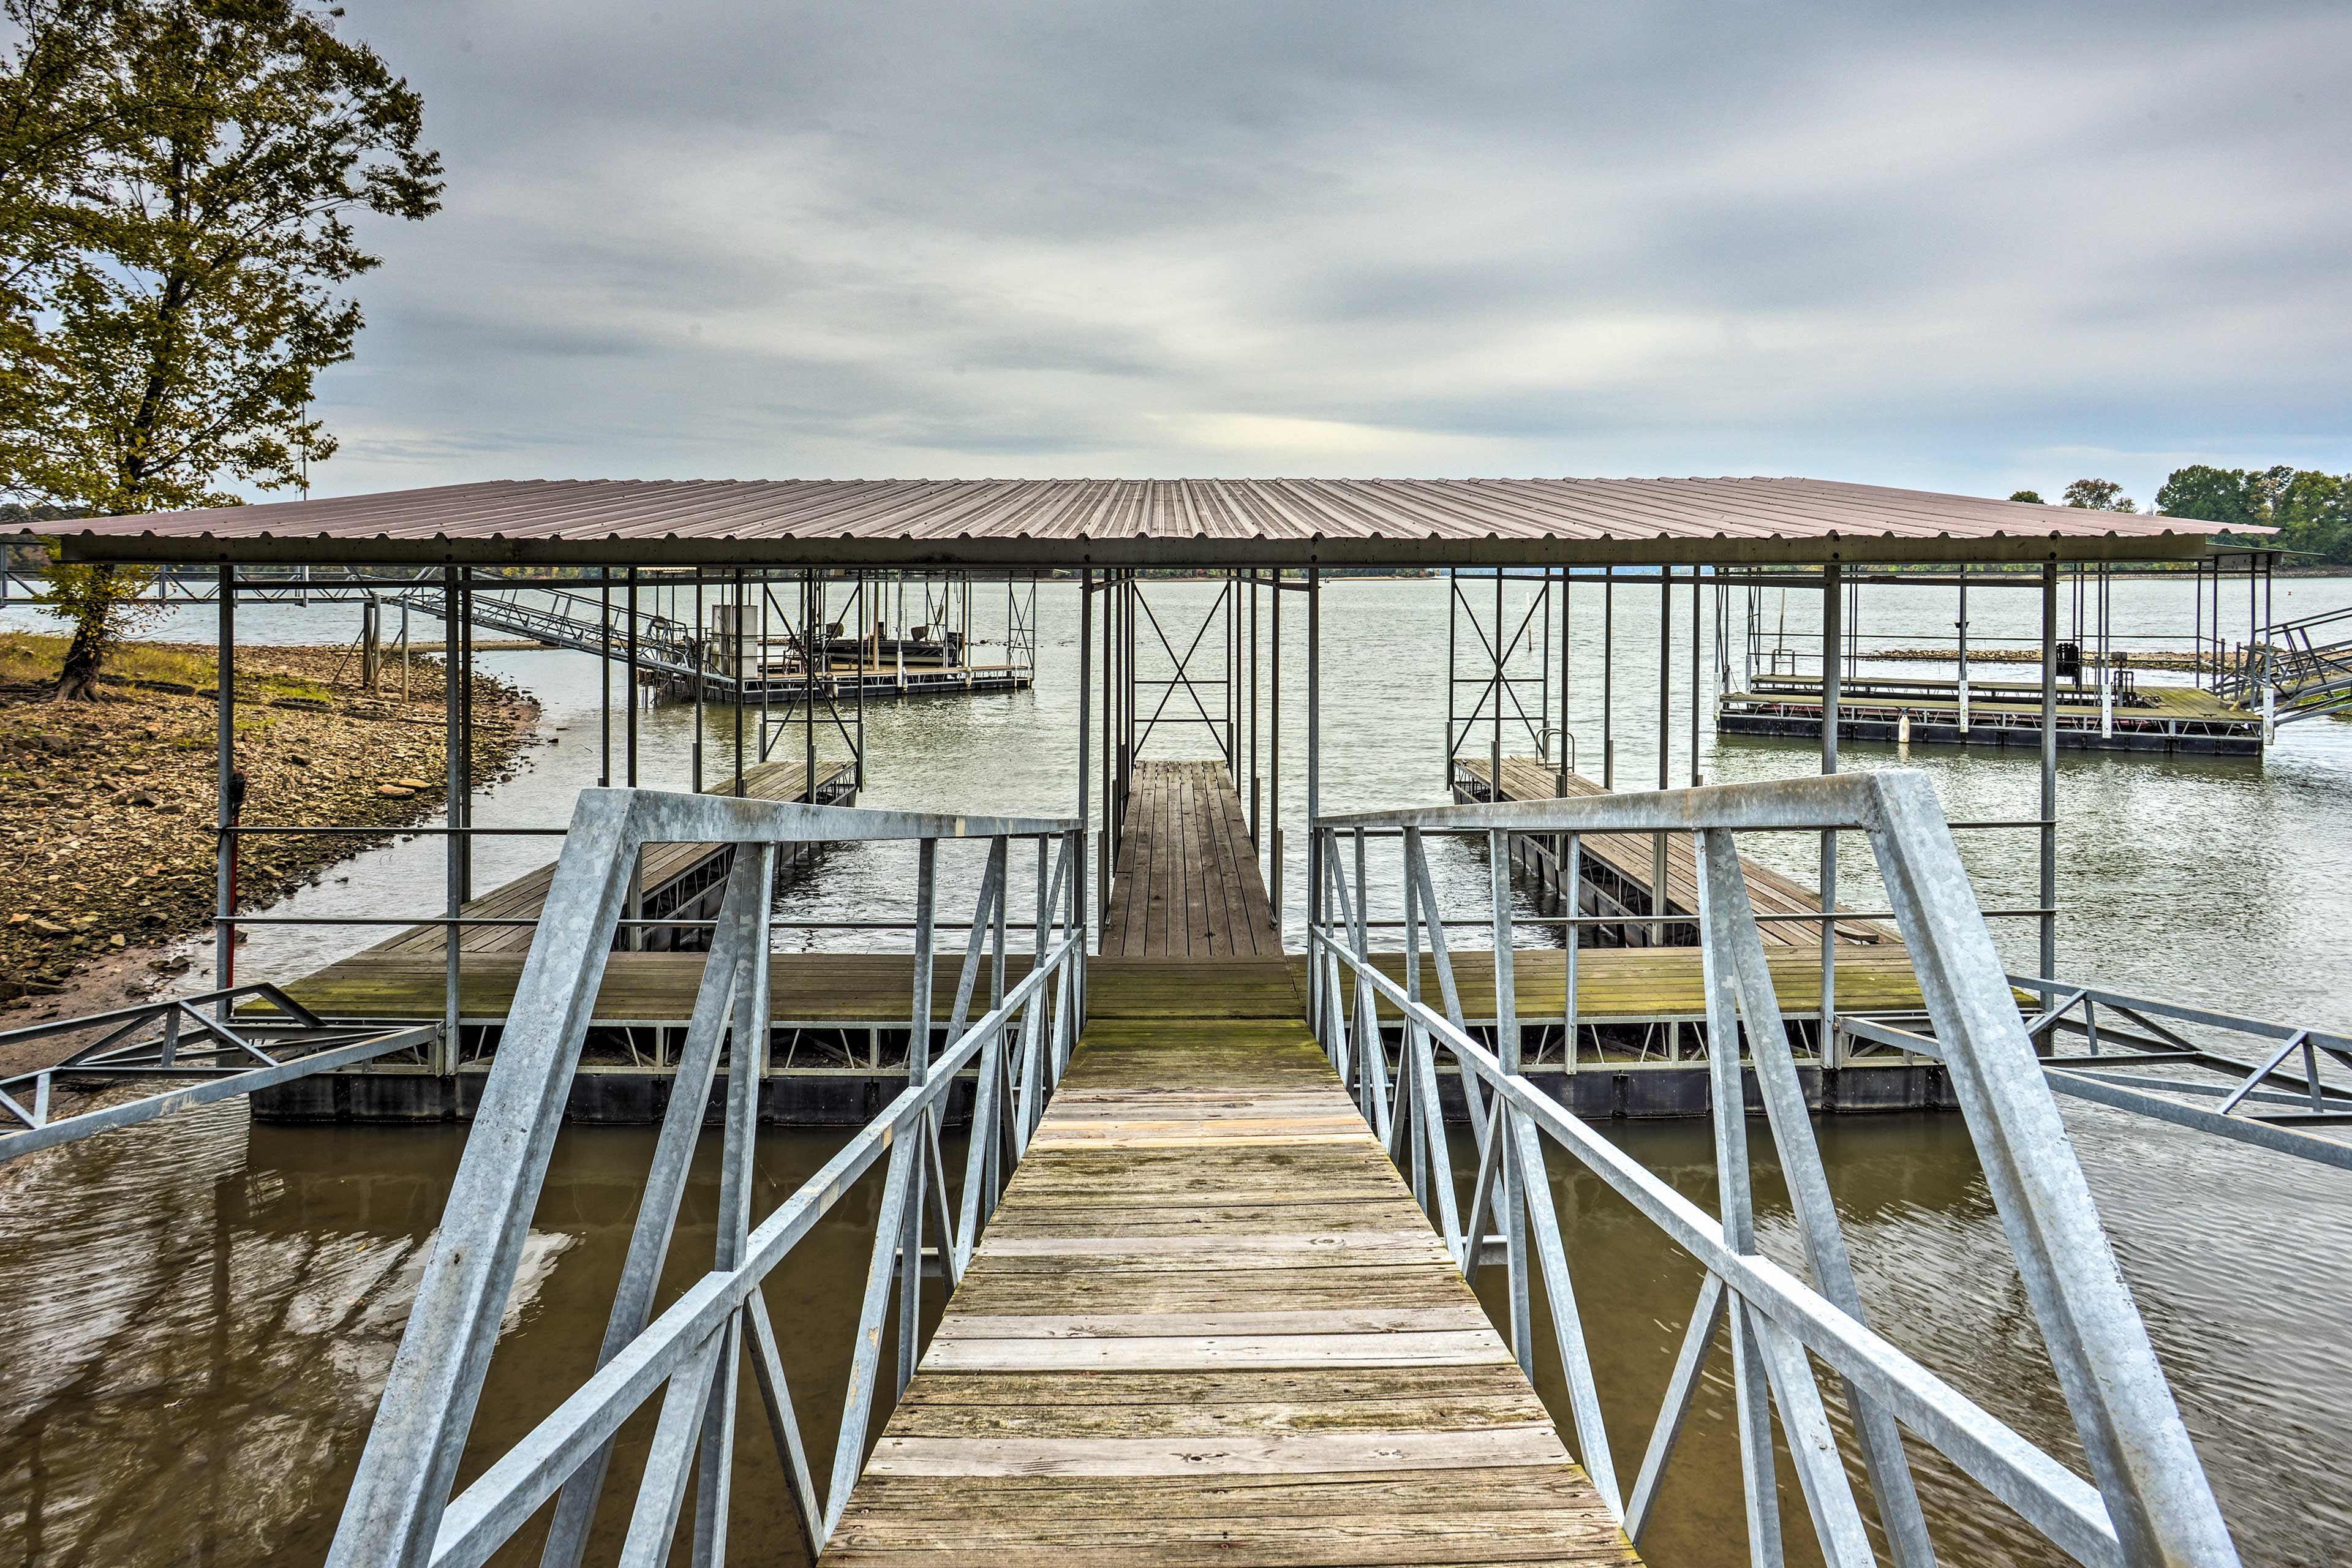 Dock your boat after exploring Kentucky Lake!